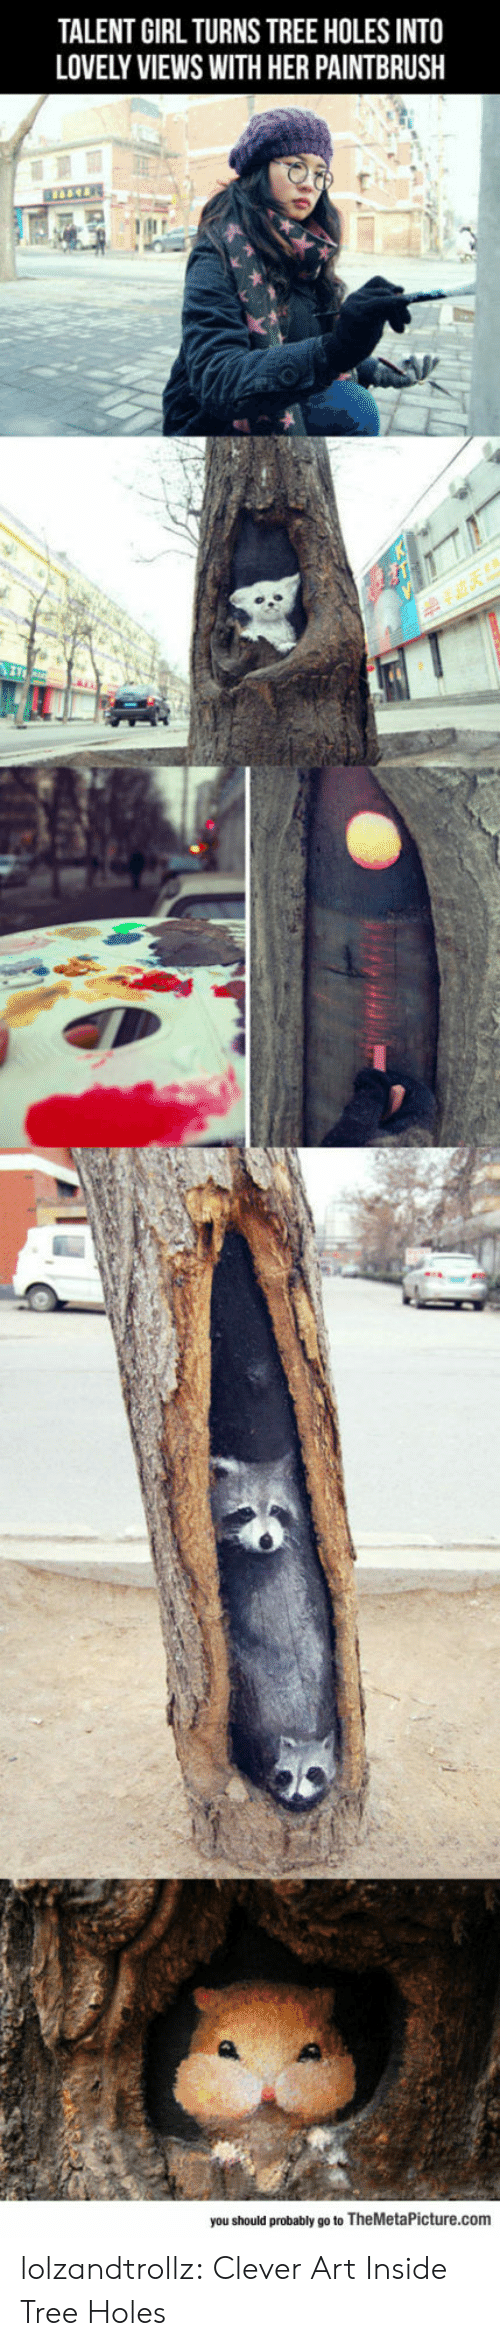 Tumblr, Holes, and Blog: TALENT GIRL TURNS TREE HOLES INTO  LOVELY VIEWS WITH HER PAINTBRUSH  you should probably go to TheMetaPicture.com lolzandtrollz:  Clever Art Inside Tree Holes